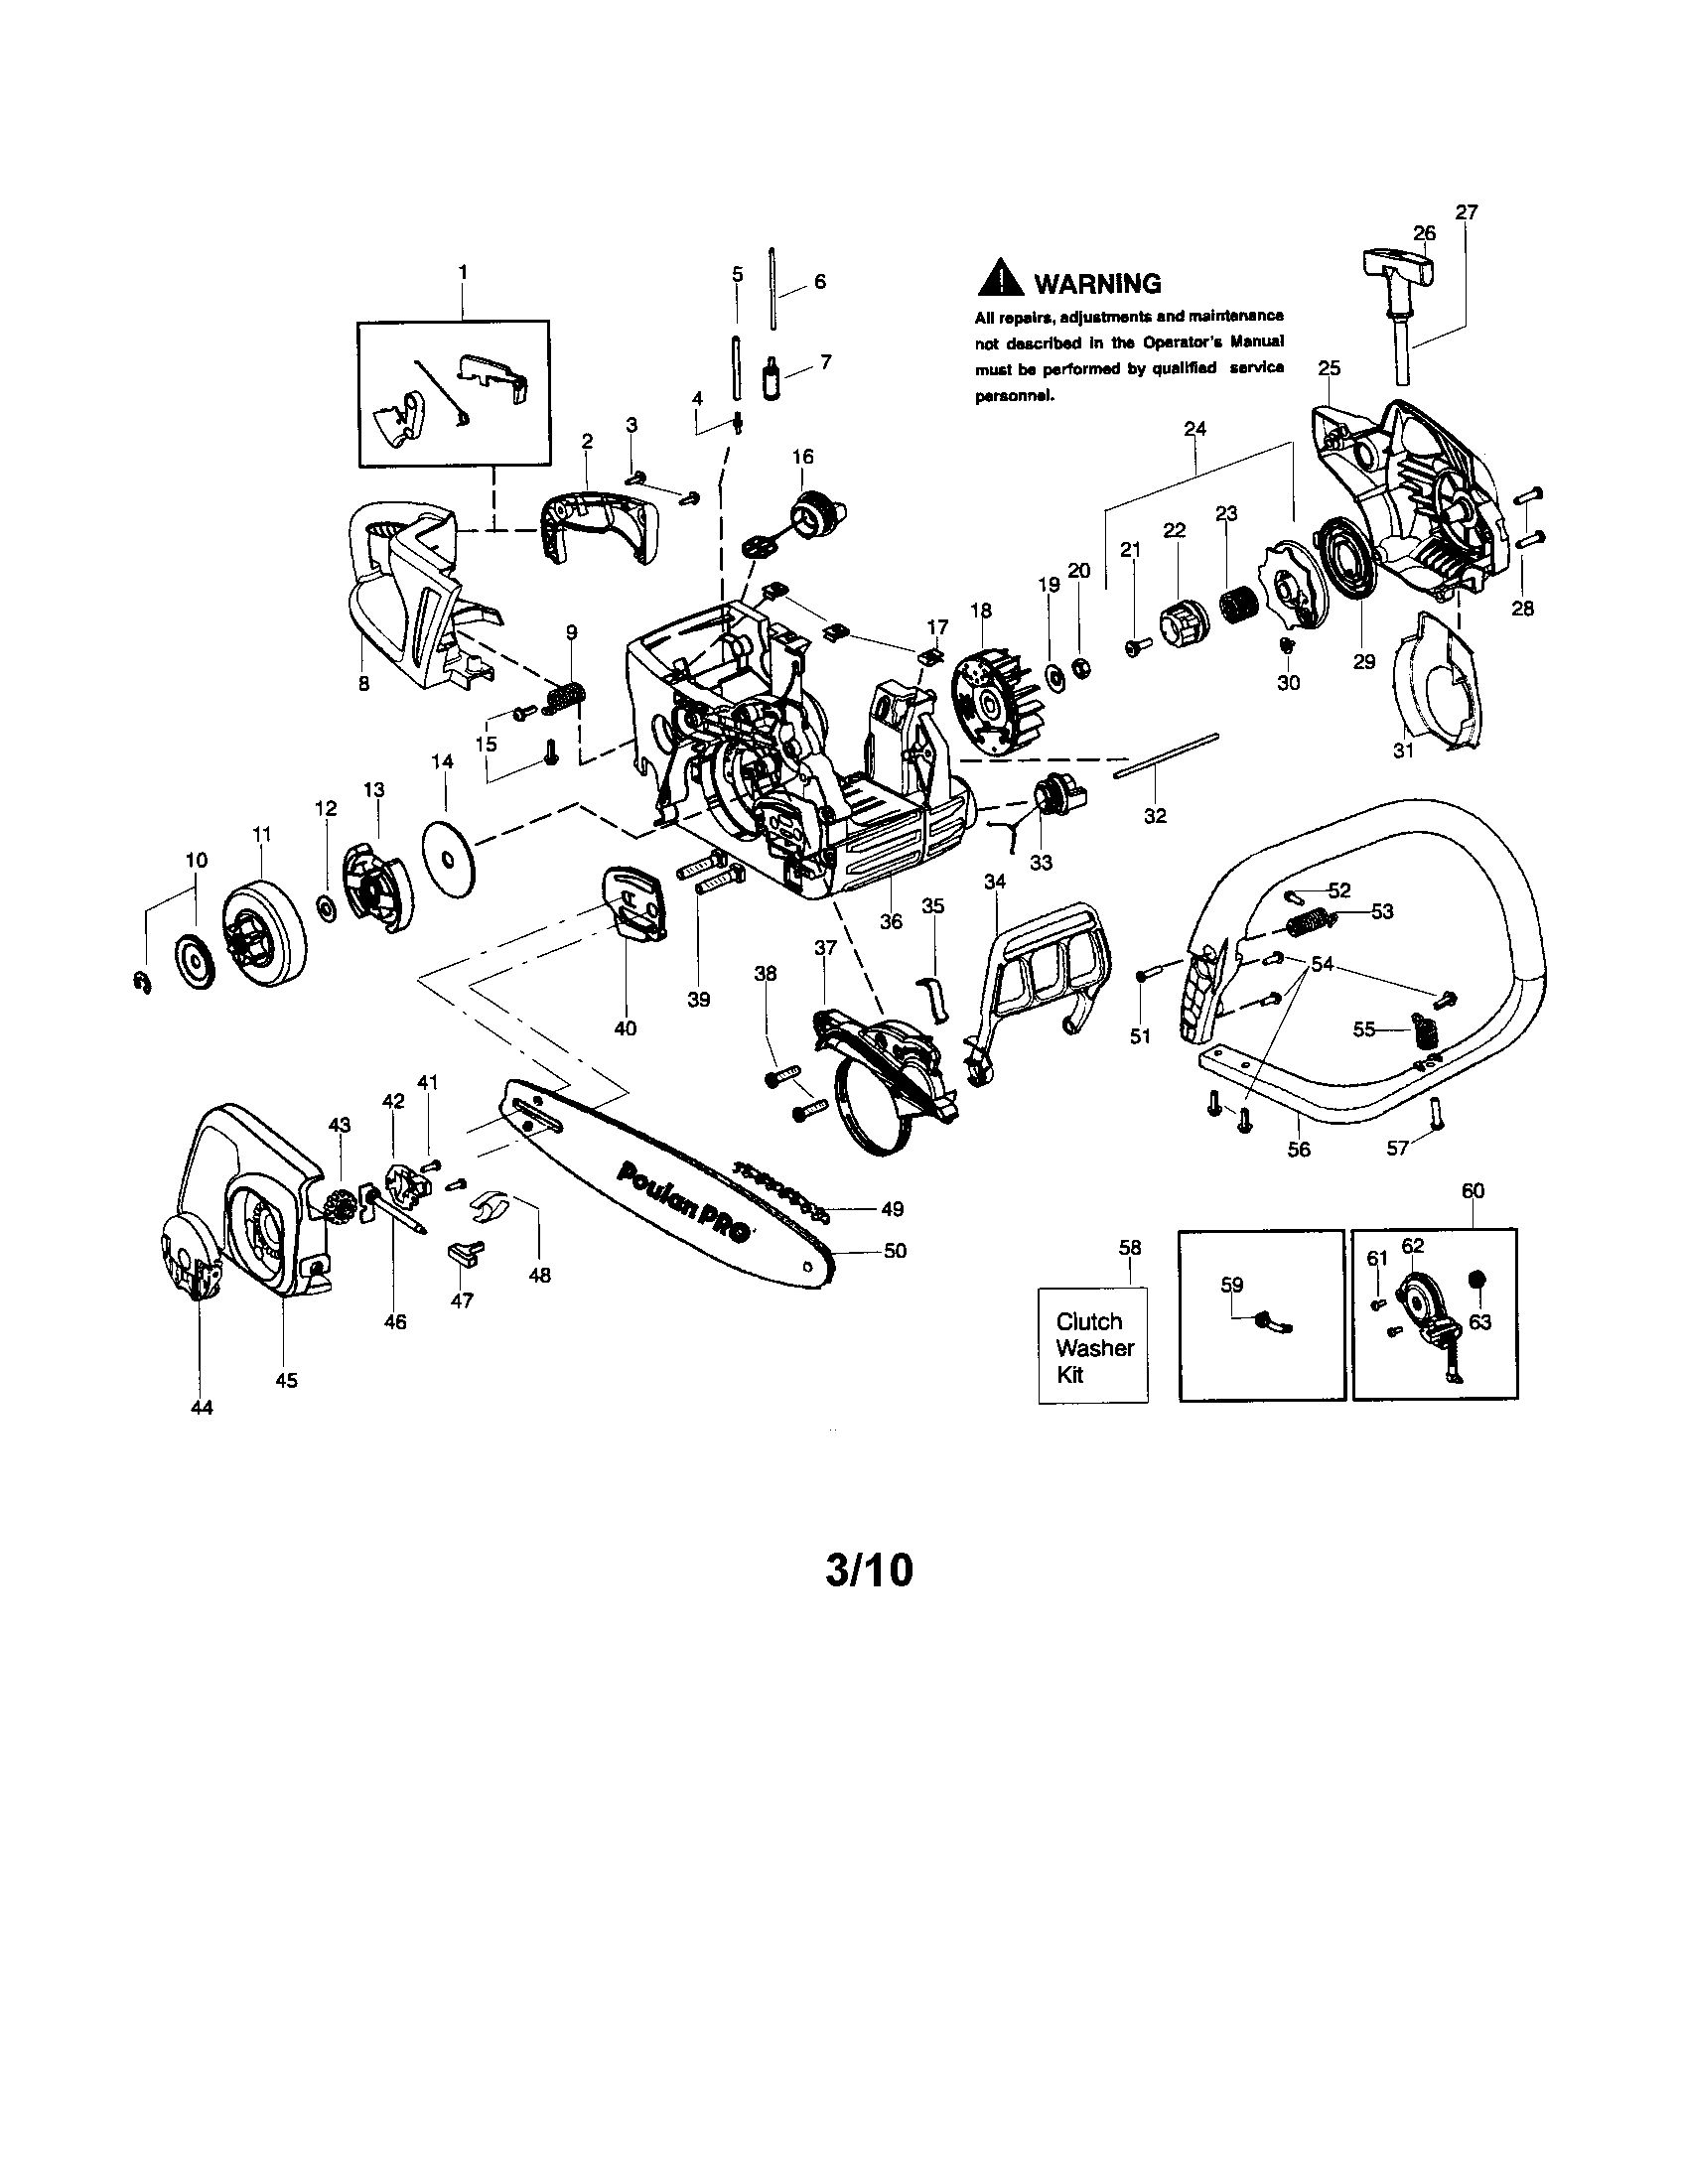 small resolution of handle chain and guide bar diagram and parts list for poulan chainsaw wiring diagram week